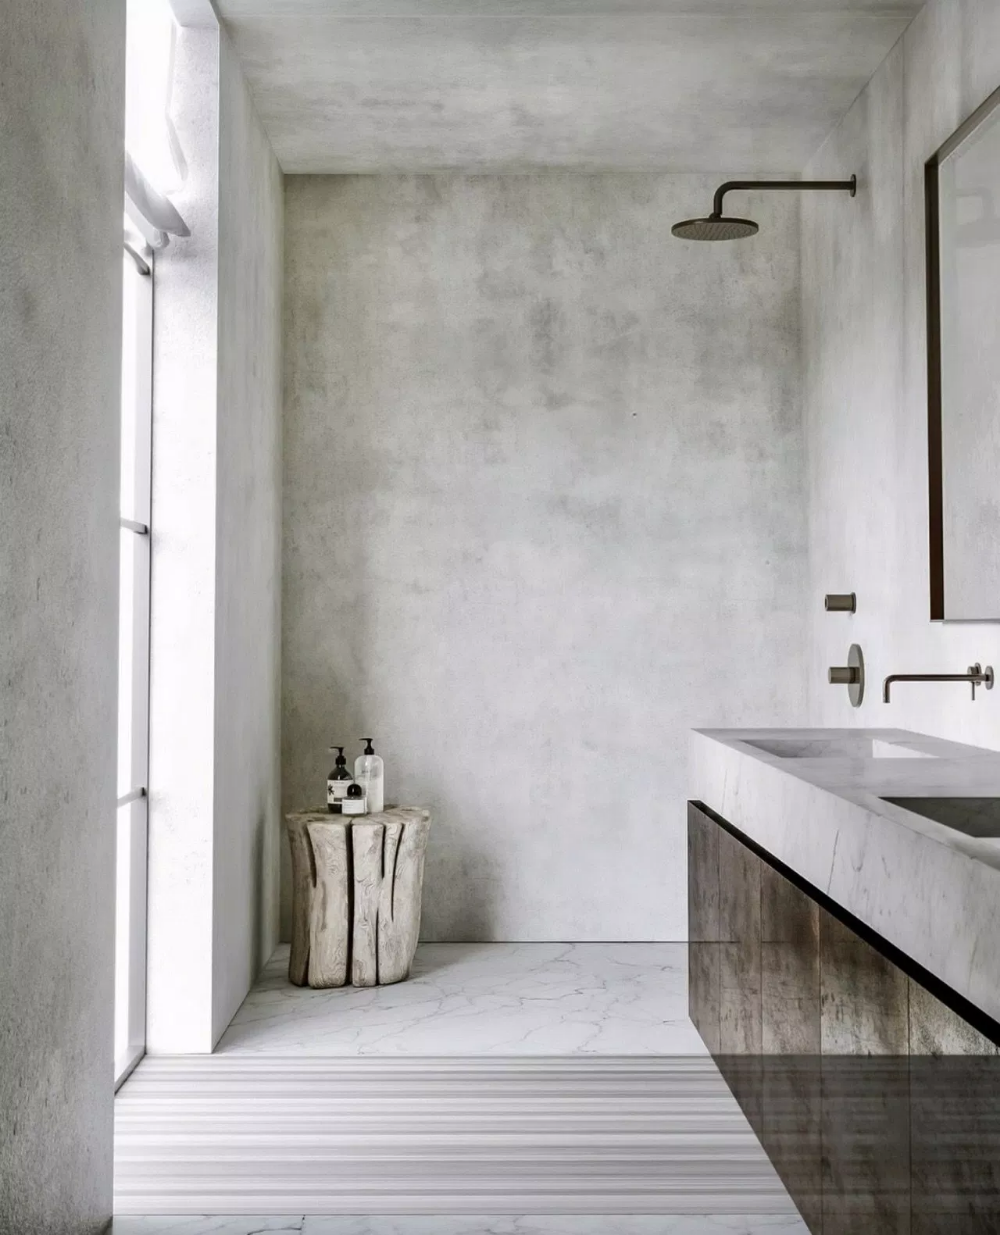 Make Your Bath Look Stylish With These 64 Minimalist Bathroom Design Ideas 4 Bathro Minimalist Bathroom Design Minimalist Bathroom Bathroom Interior Design